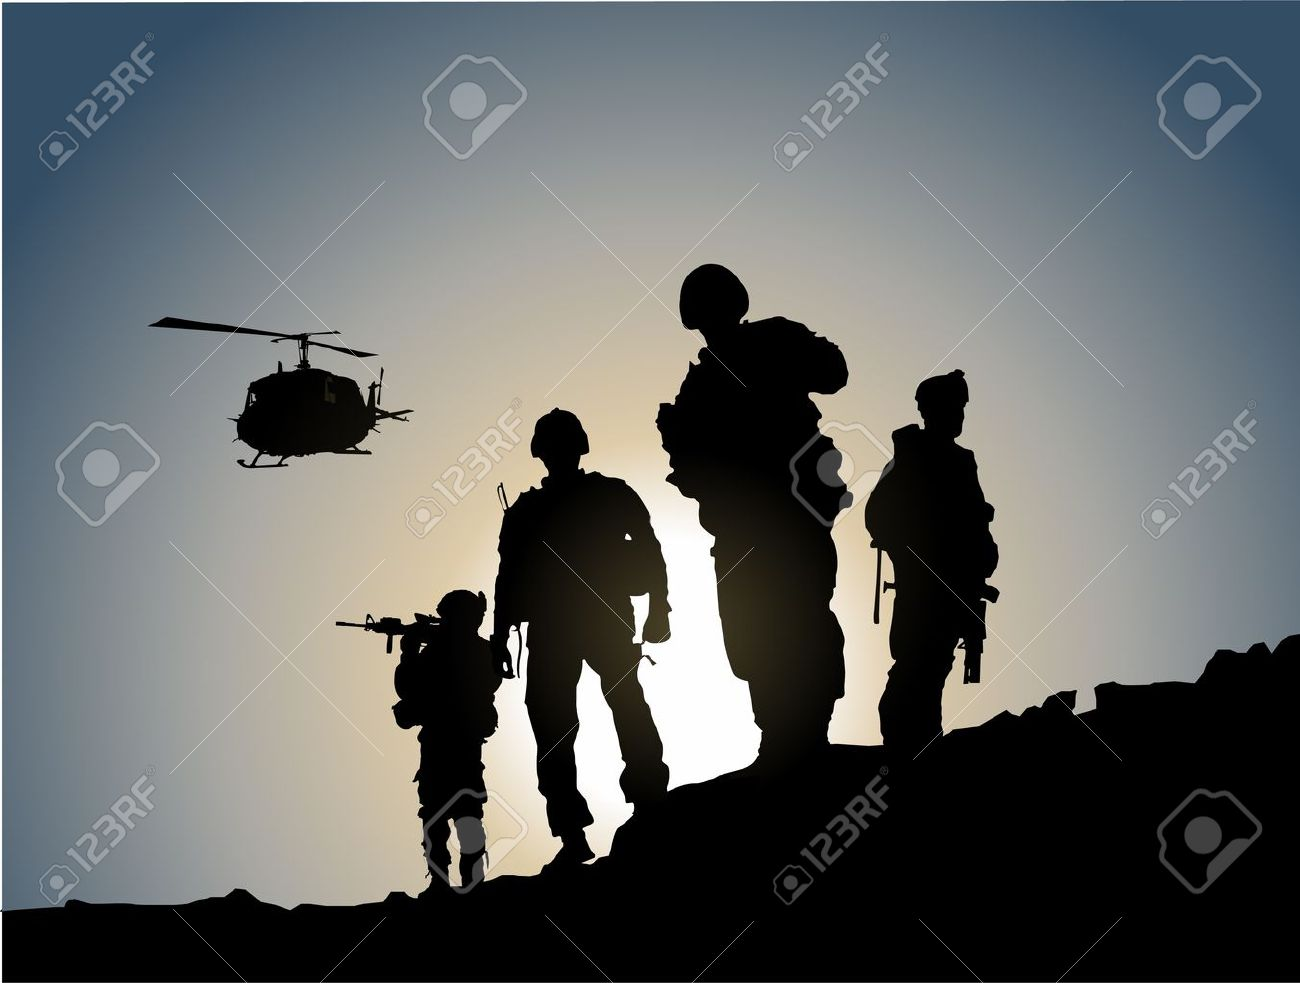 Battlefield clipart jpg free stock 1,690 Battlefield Stock Illustrations, Cliparts And Royalty Free ... jpg free stock